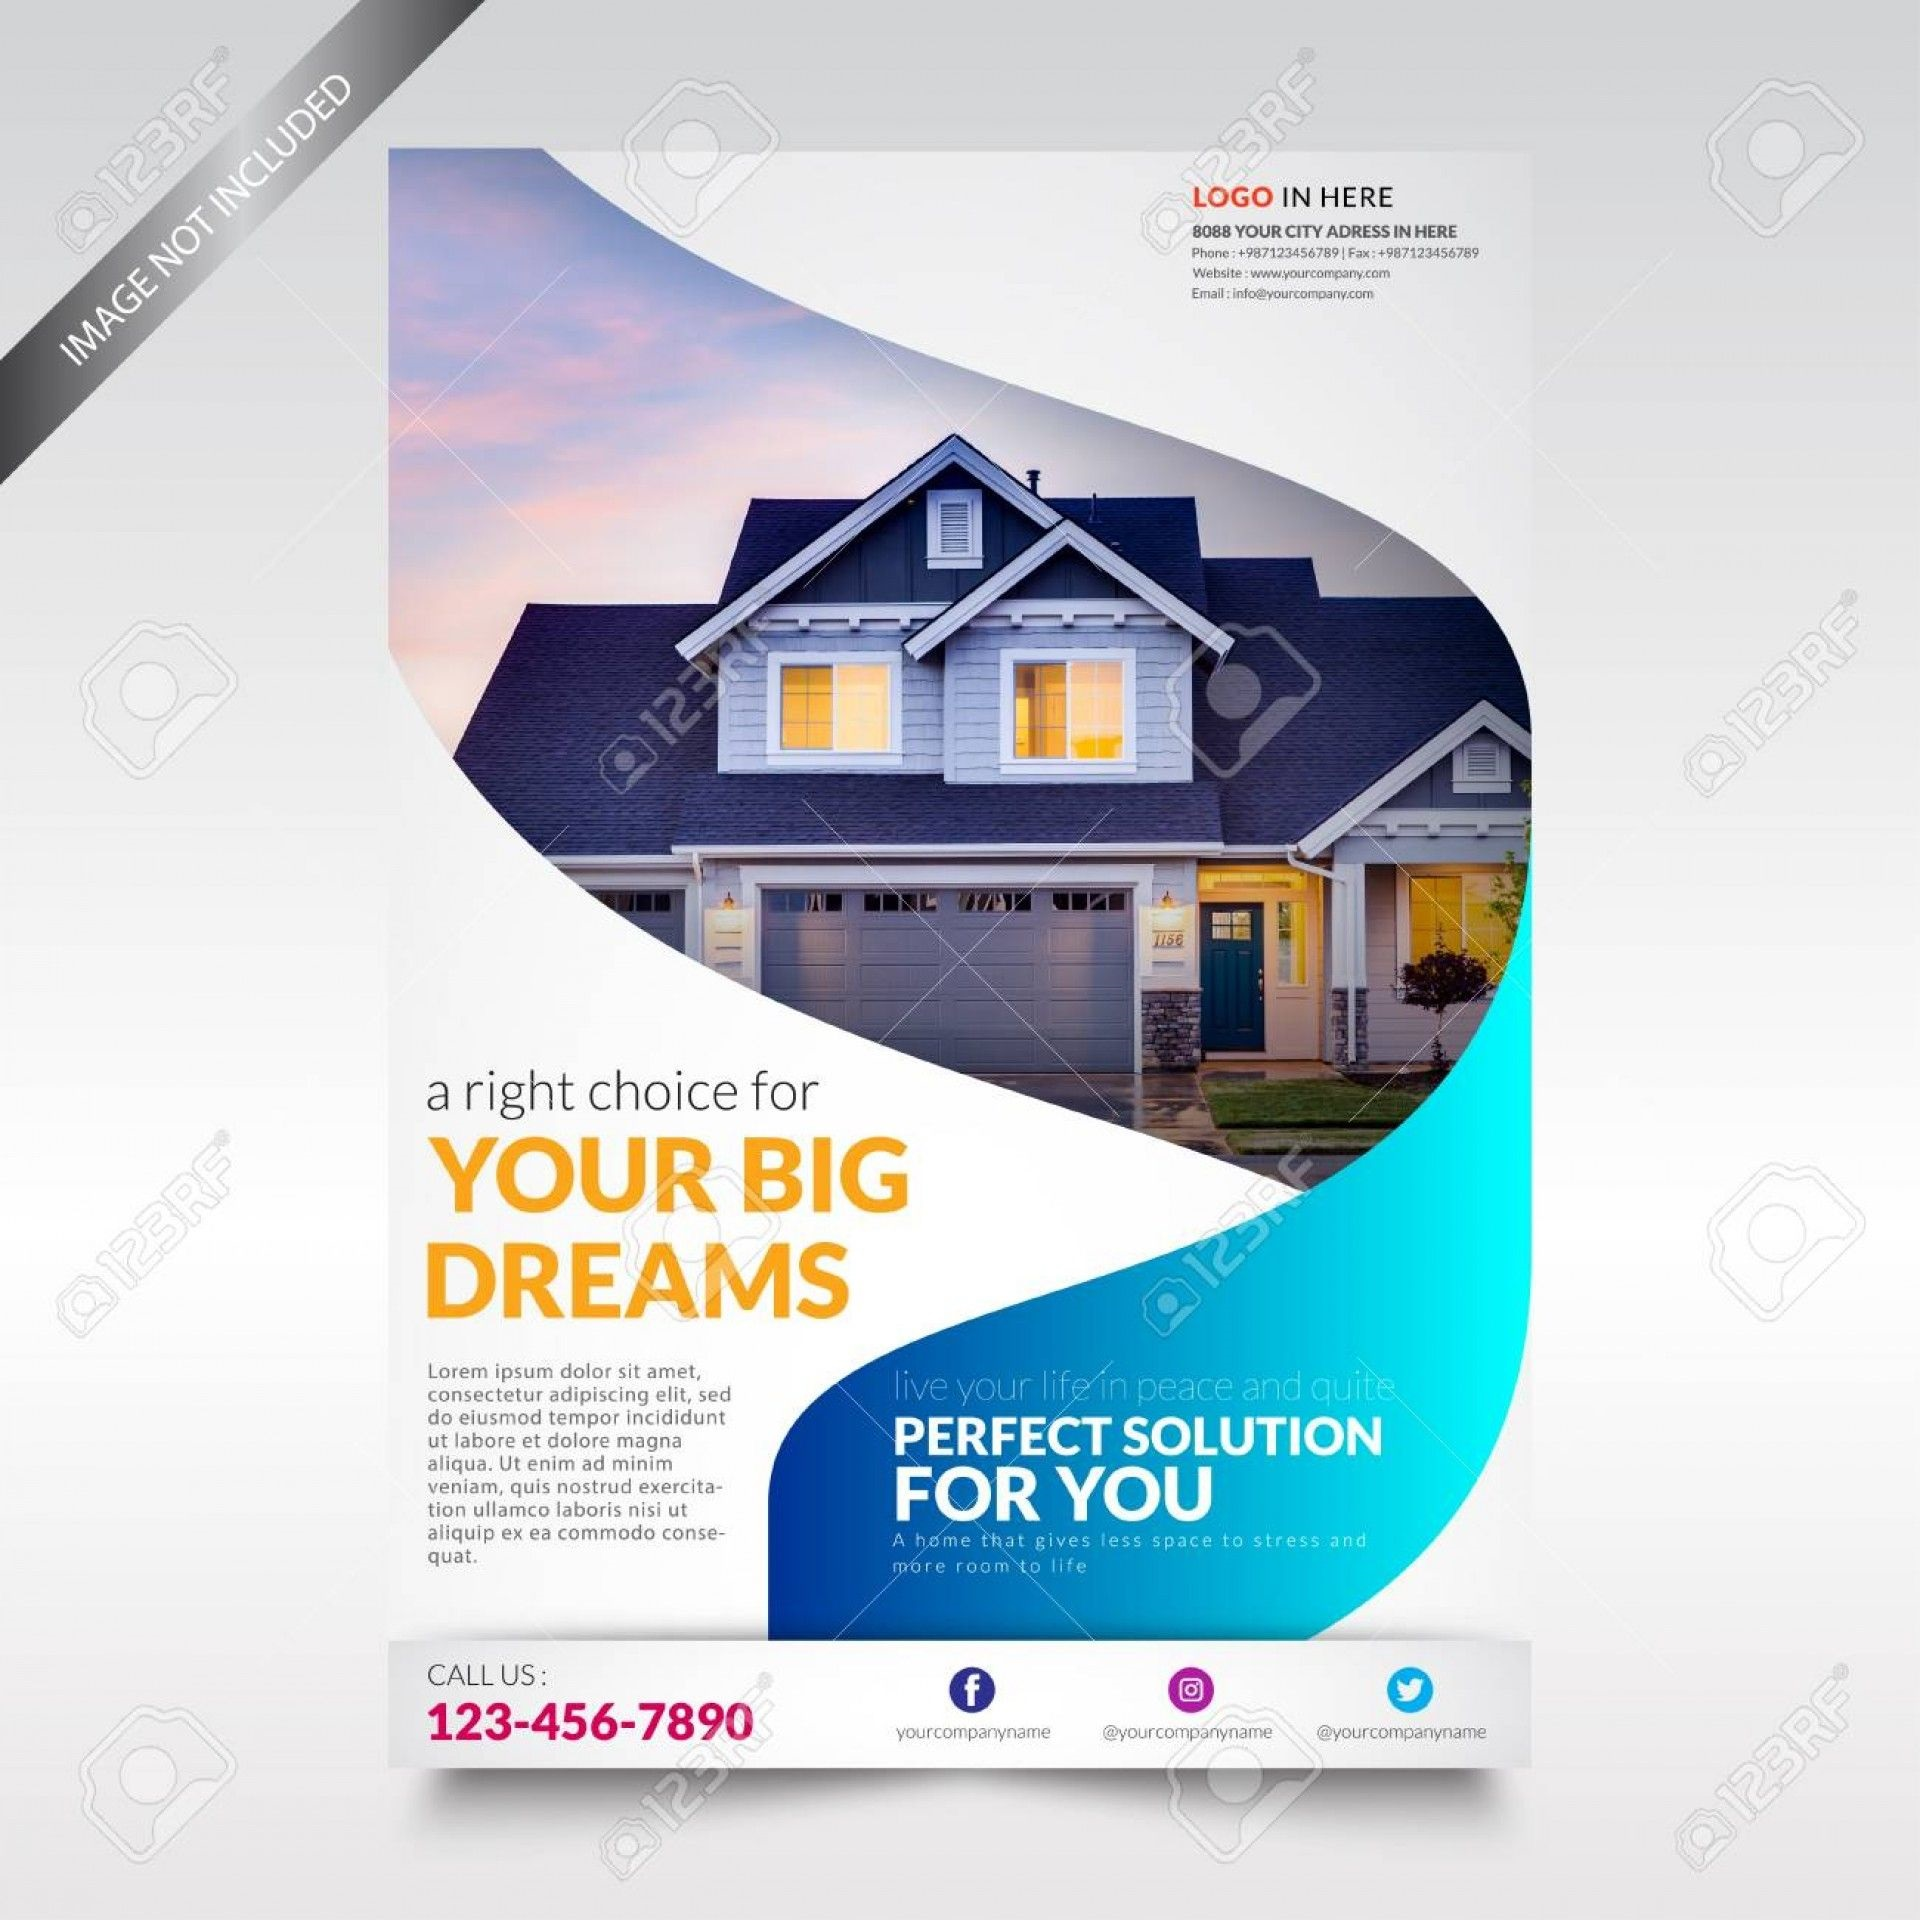 001 Unusual Real Estate Advertising Template Image  Facebook Ad CraigslistFull